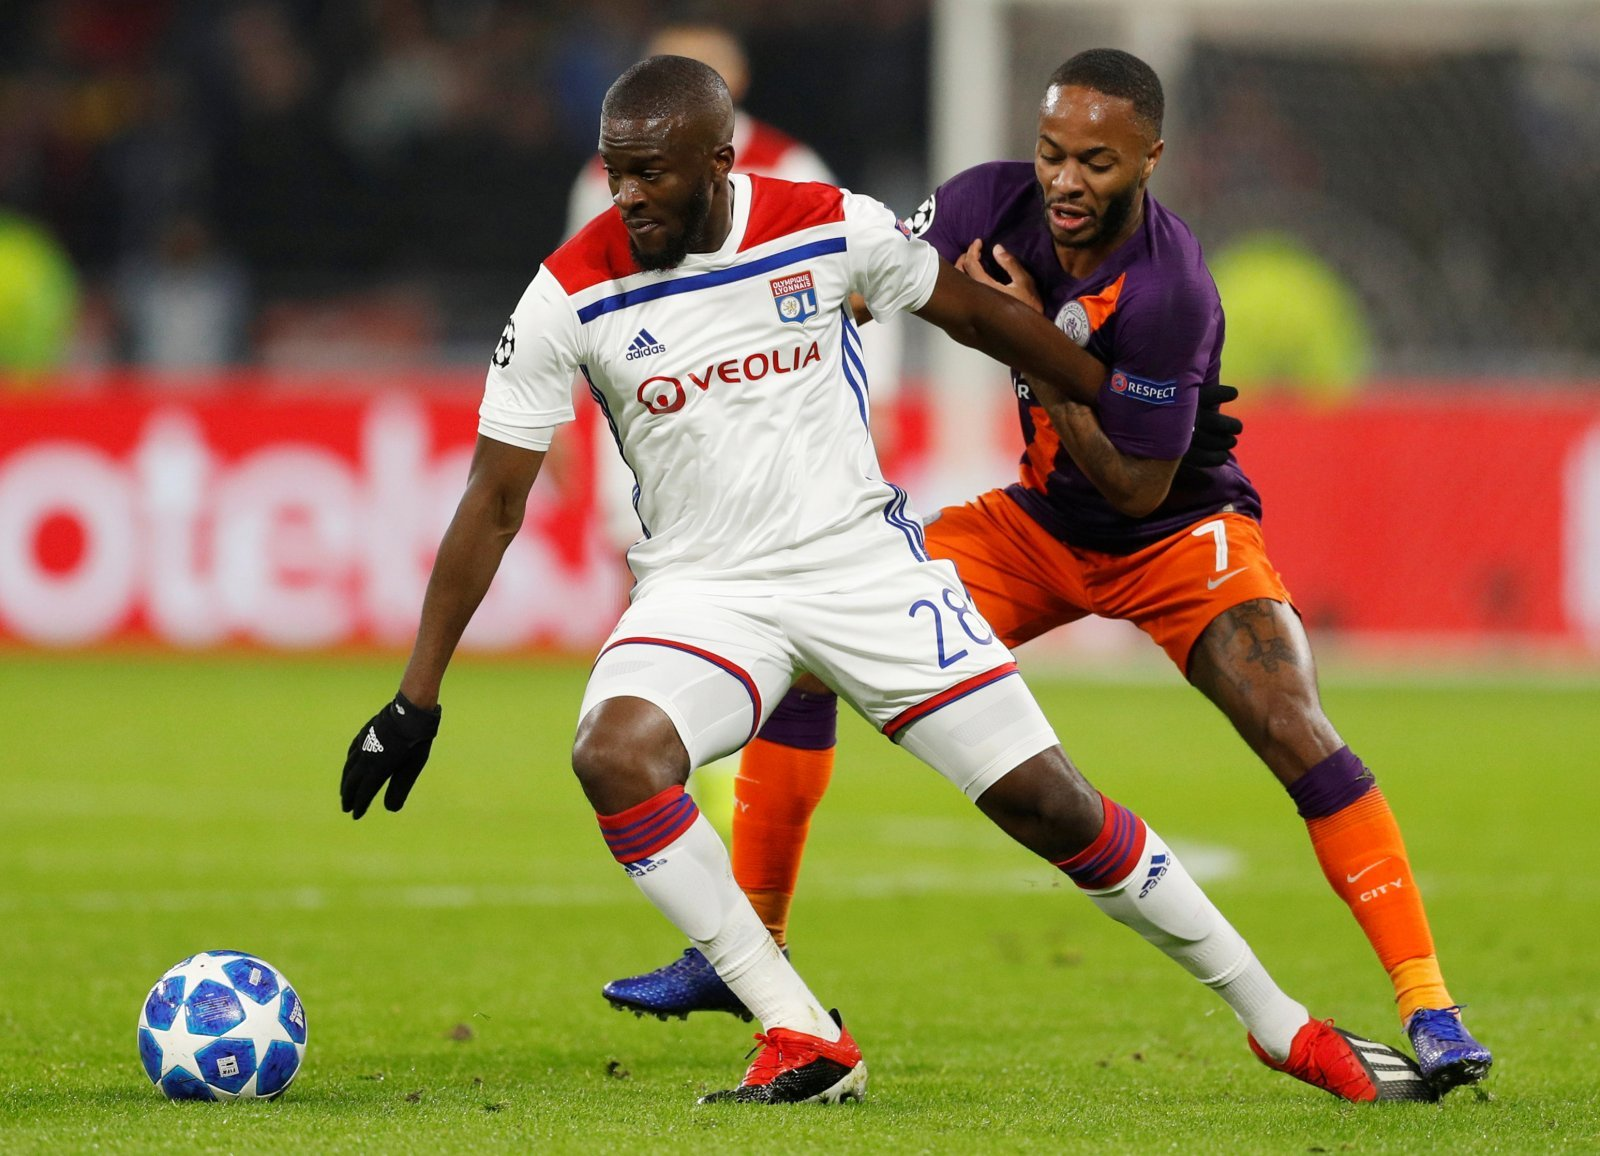 Tanguy Ndombele could take Tottenham to the next level